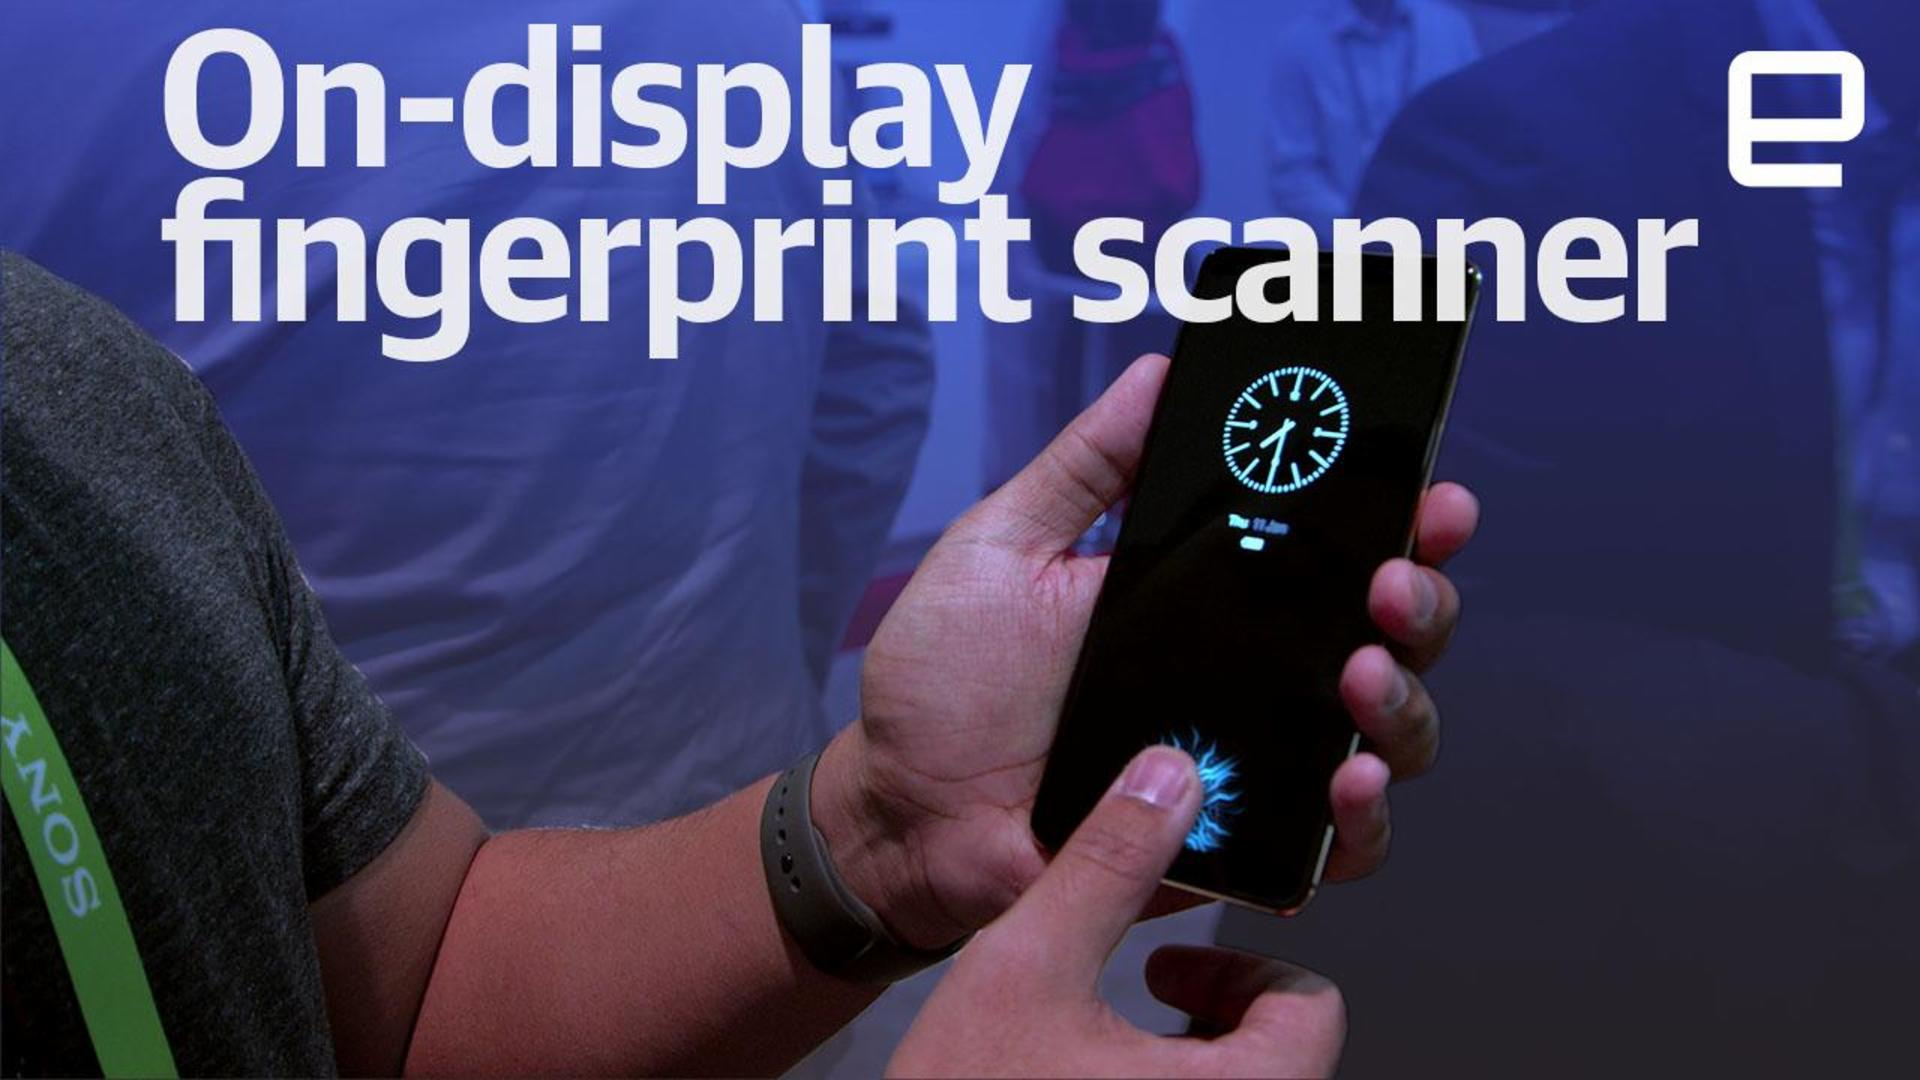 This phone's in-display fingerprint sensor is a taste of things to come